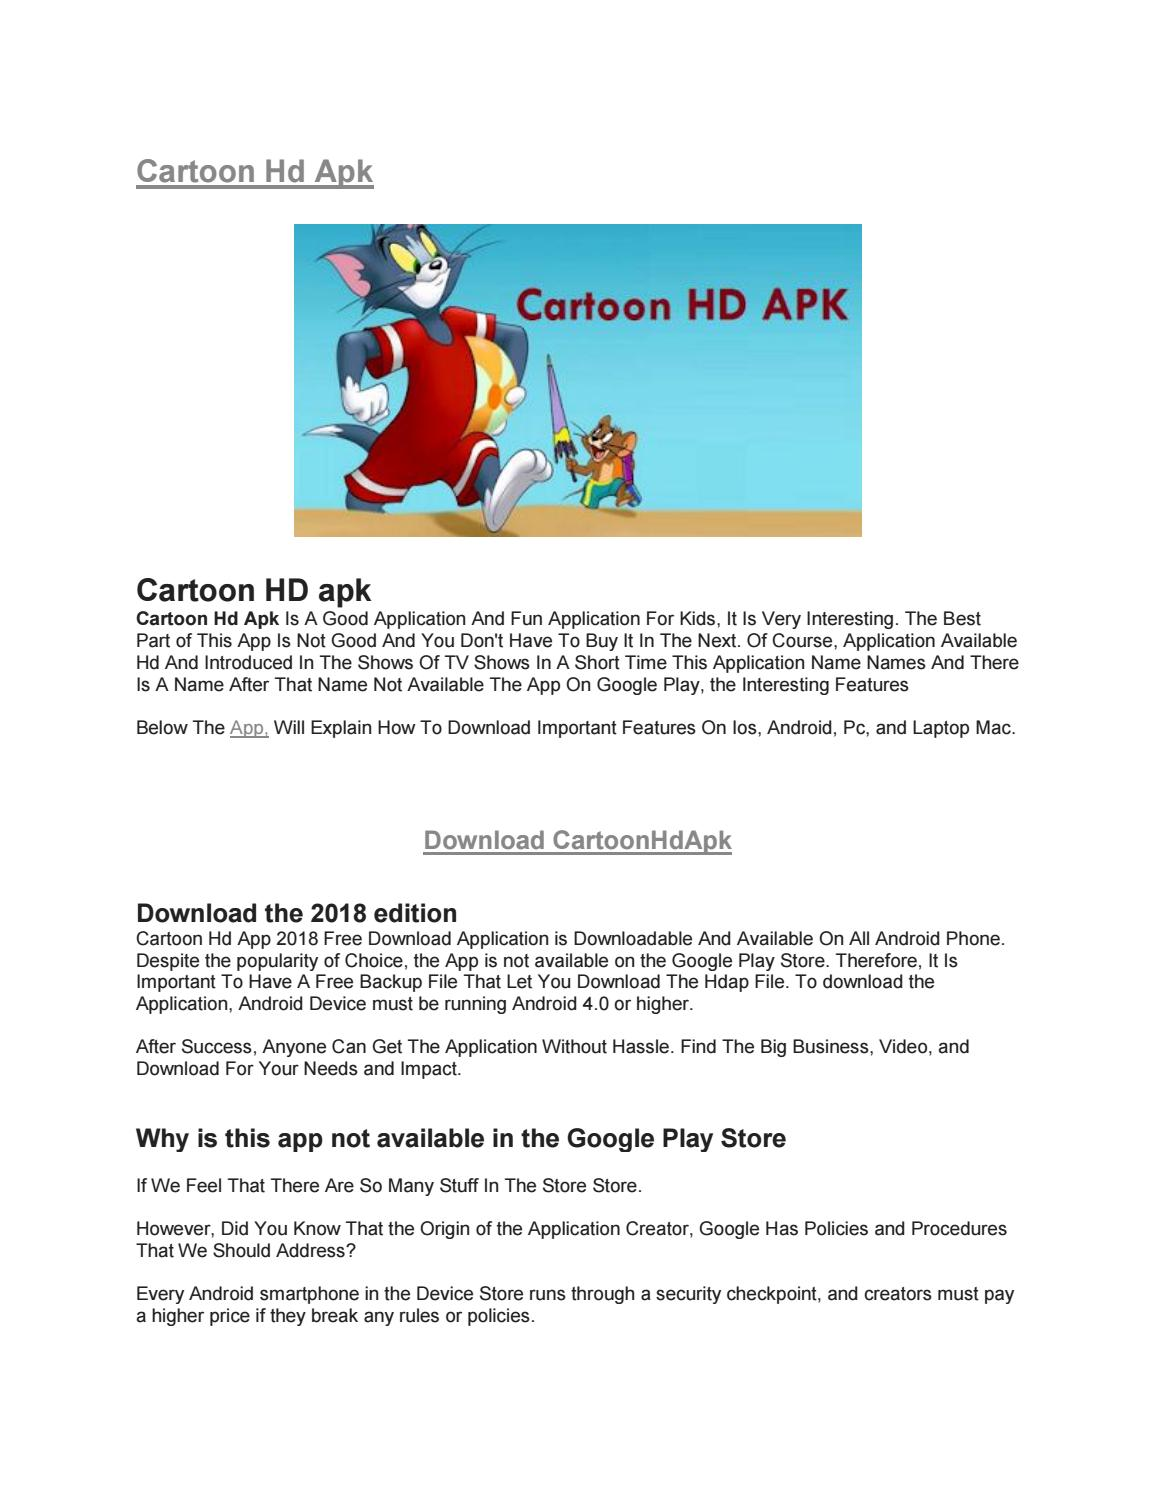 Cartoon Hd Apk By Apkpureapps14 Issuu